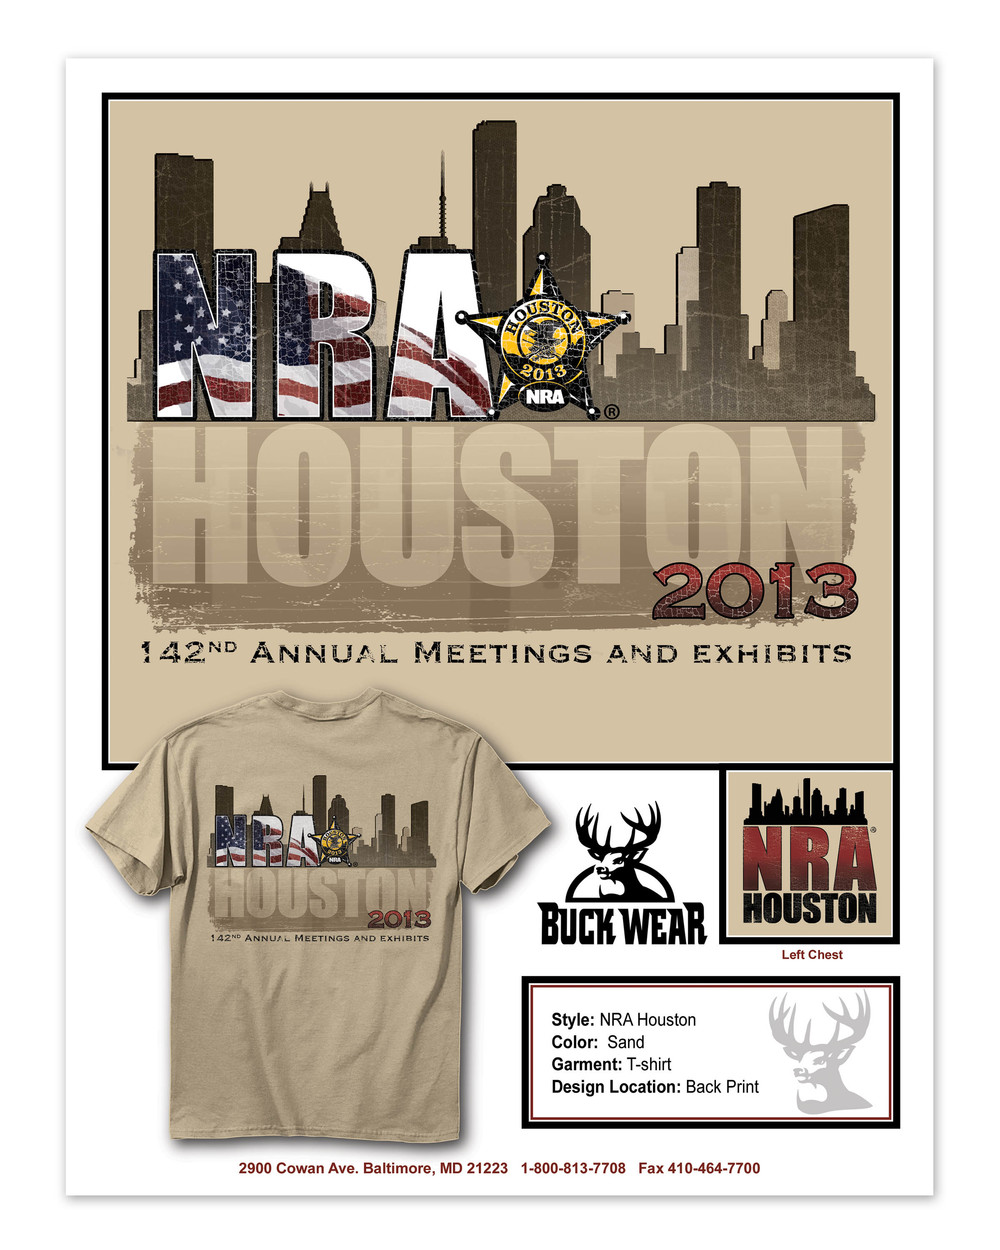 BuckWear 2013 142nd    Annual NRA Meeting and       Exhibit Shirt Design